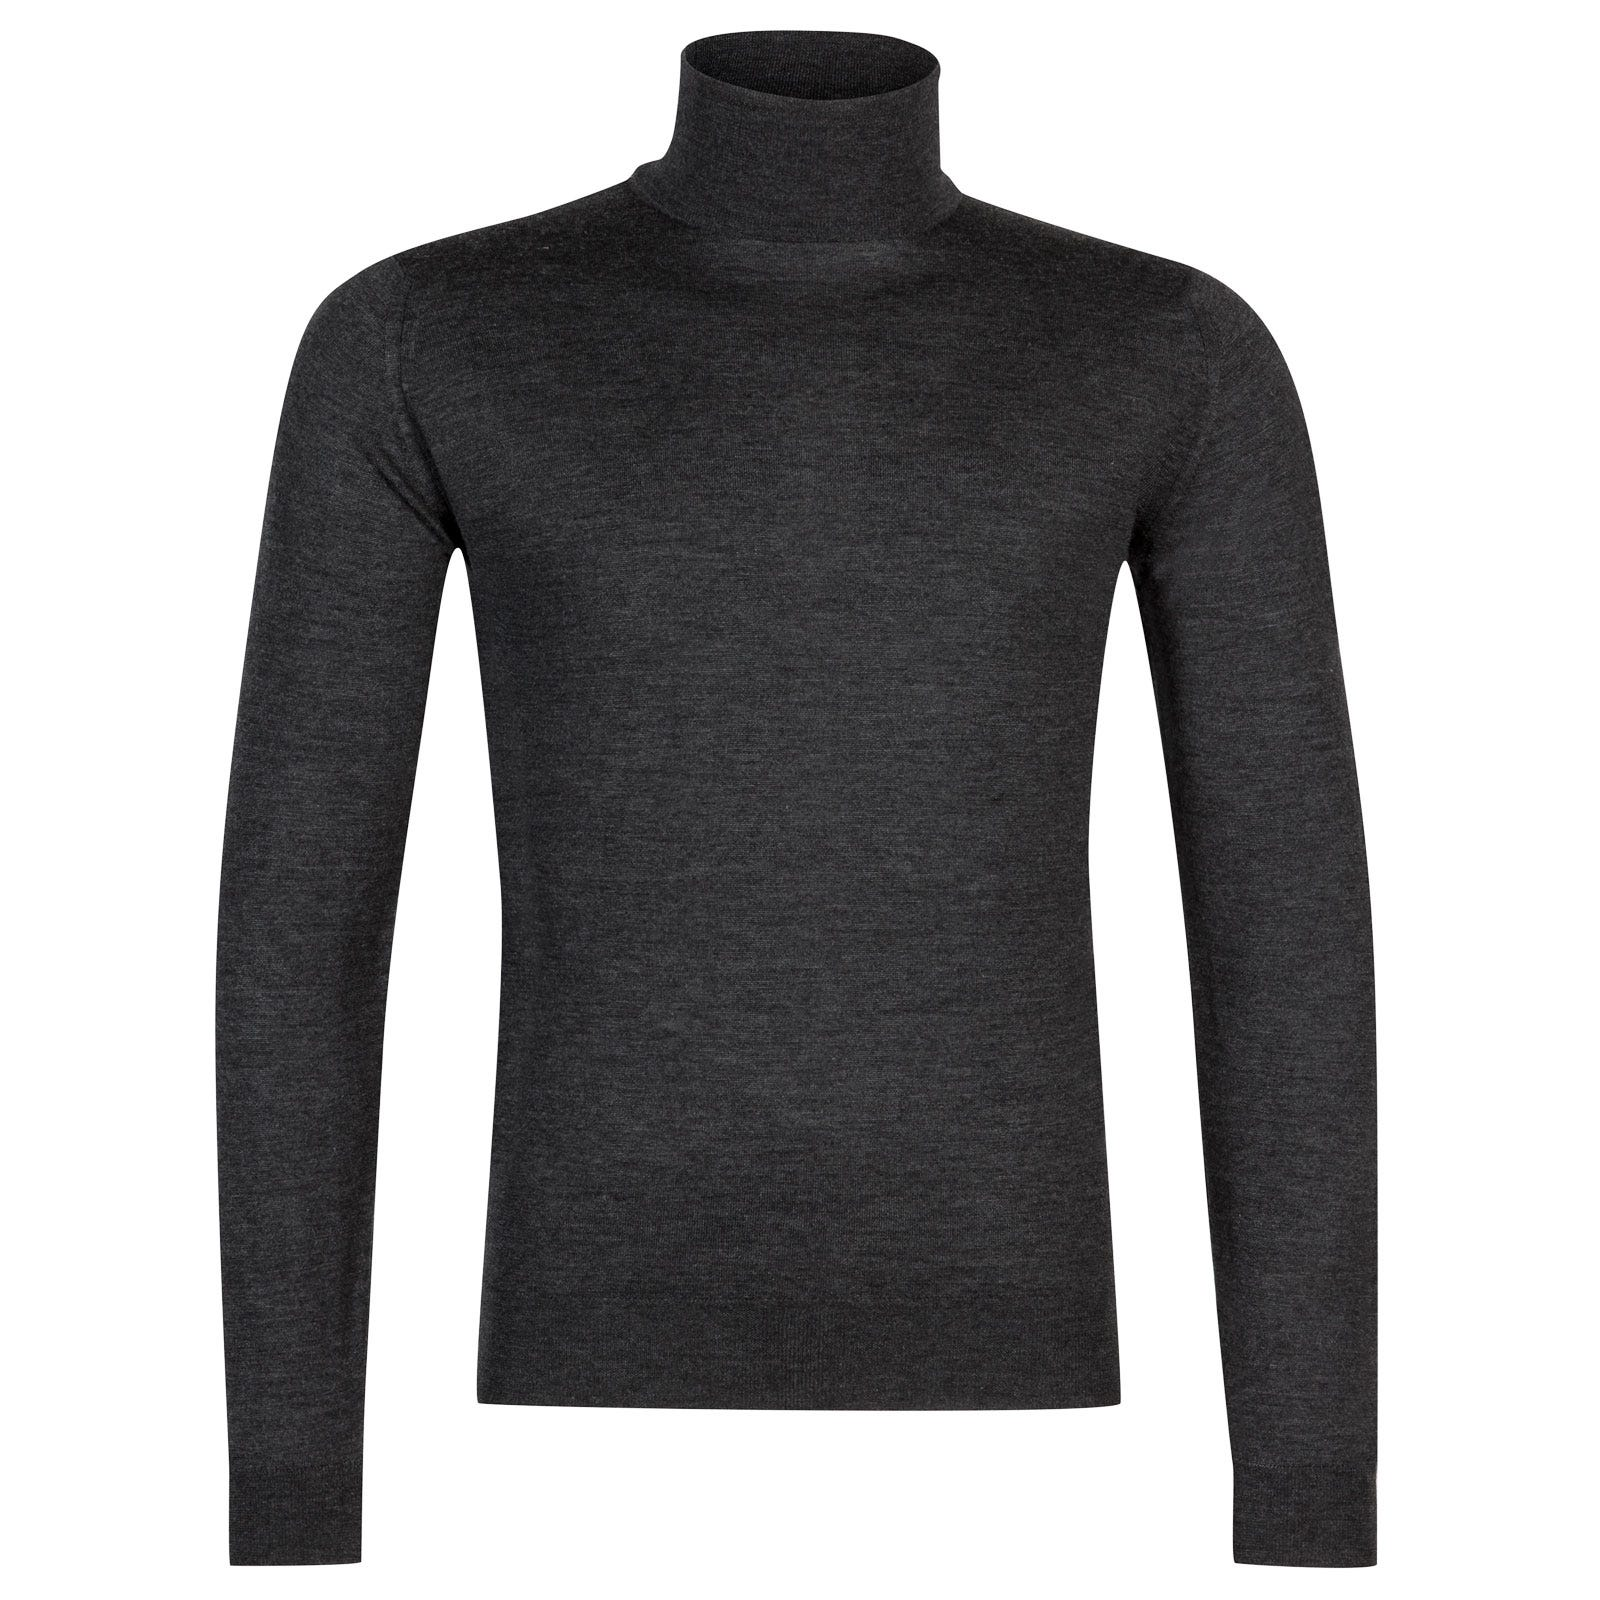 John Smedley Arlington Merino Wool and Cashmere Pullover in Charcoal-M